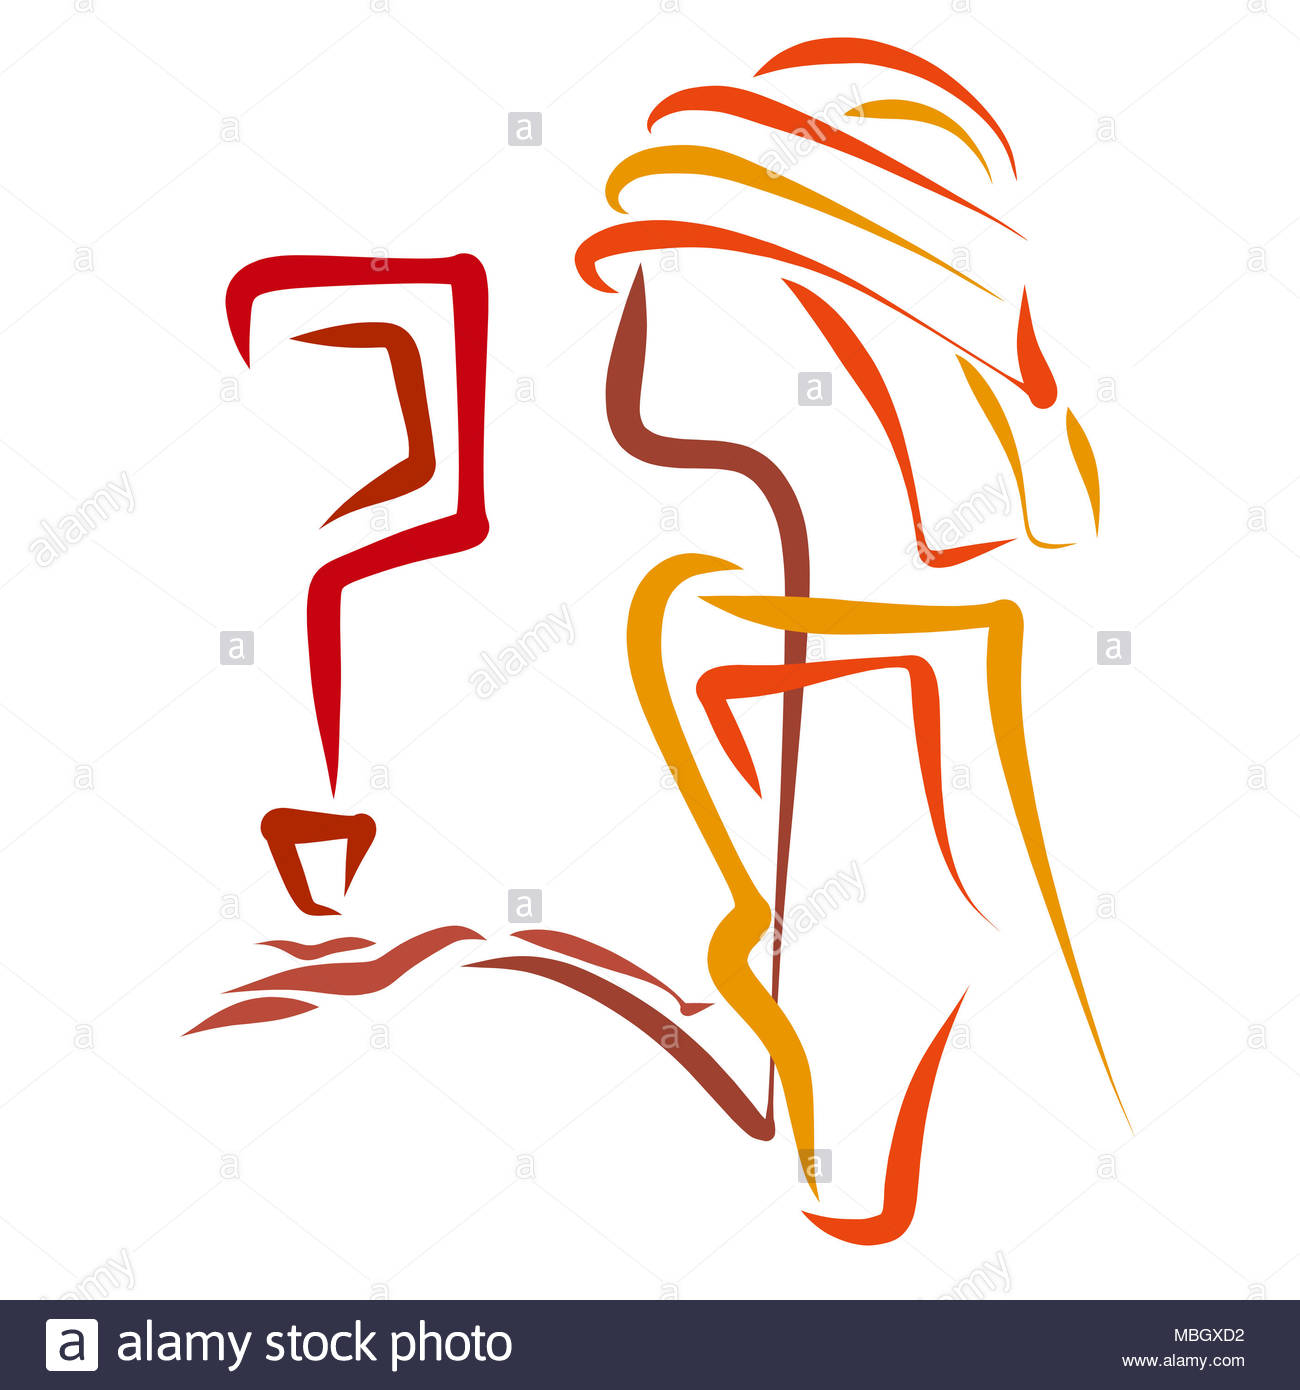 A man in an unusual headdress with a question mark in his hand - Stock Image